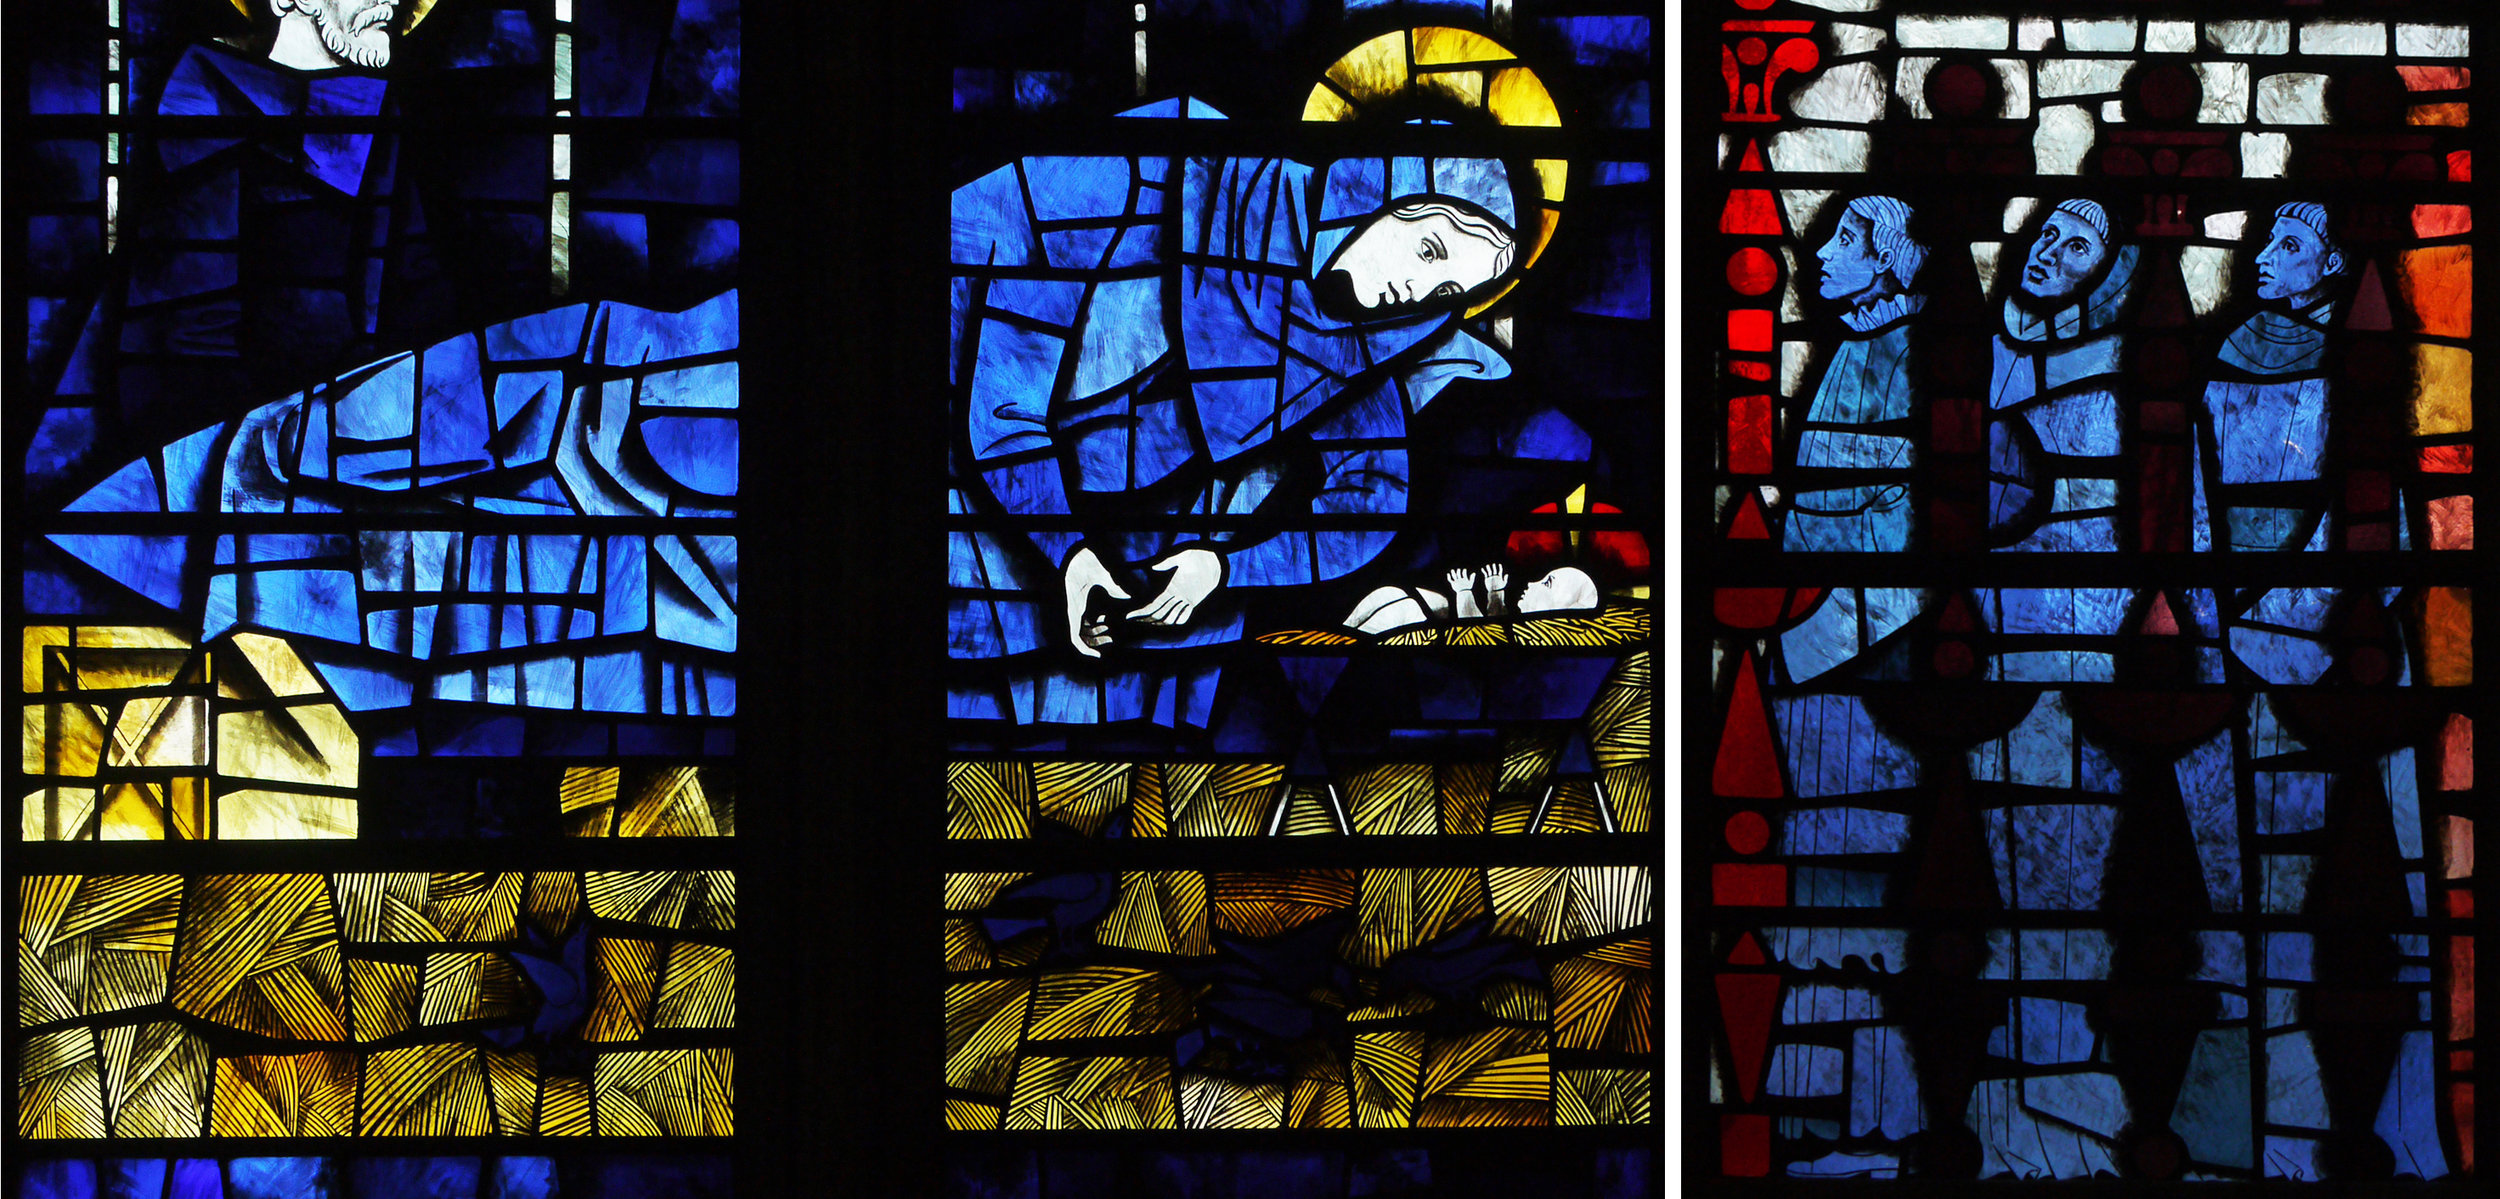 Details from the centre and the bottom right of the nativity window